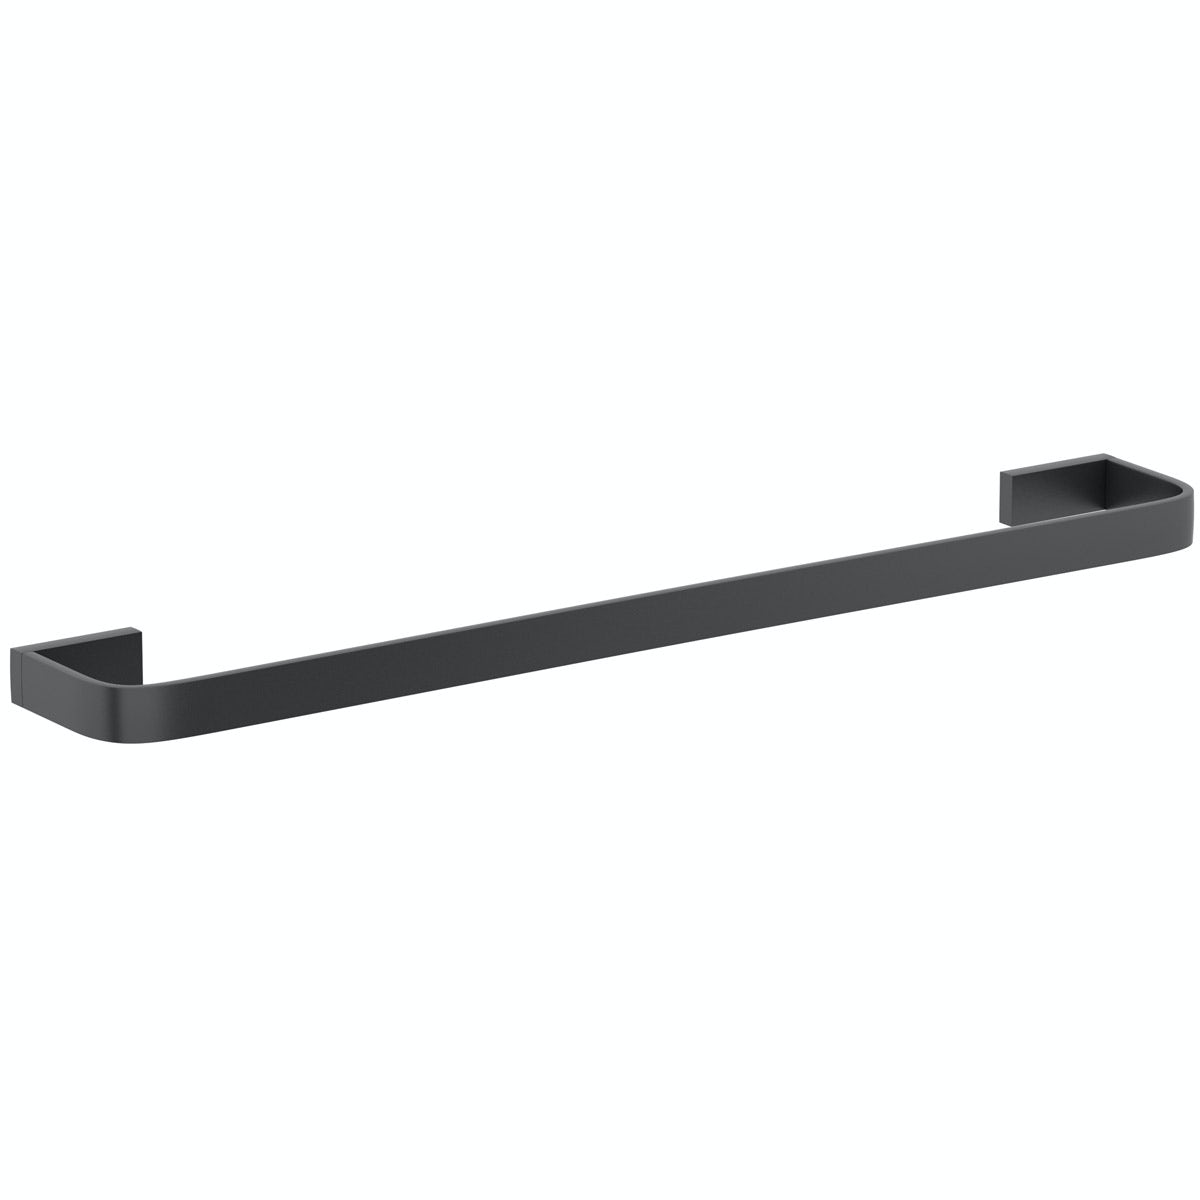 Mode Spencer black square single towel rail 600mm